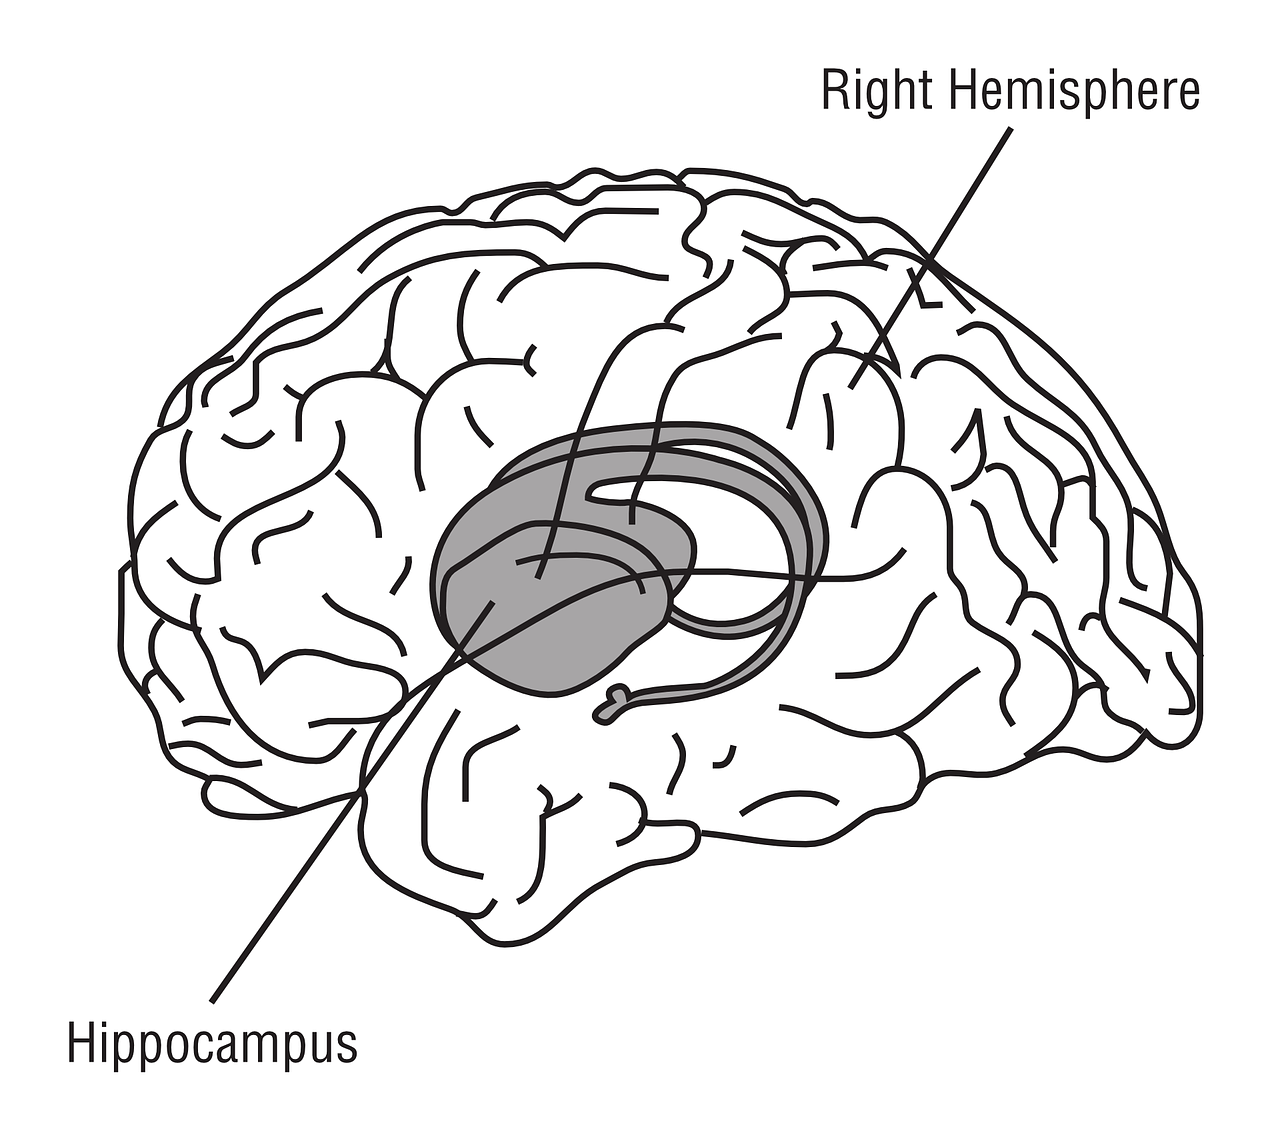 Phthalates impair neuroplasticity in the hippocampus, a region of the brain involved in memory and learning.